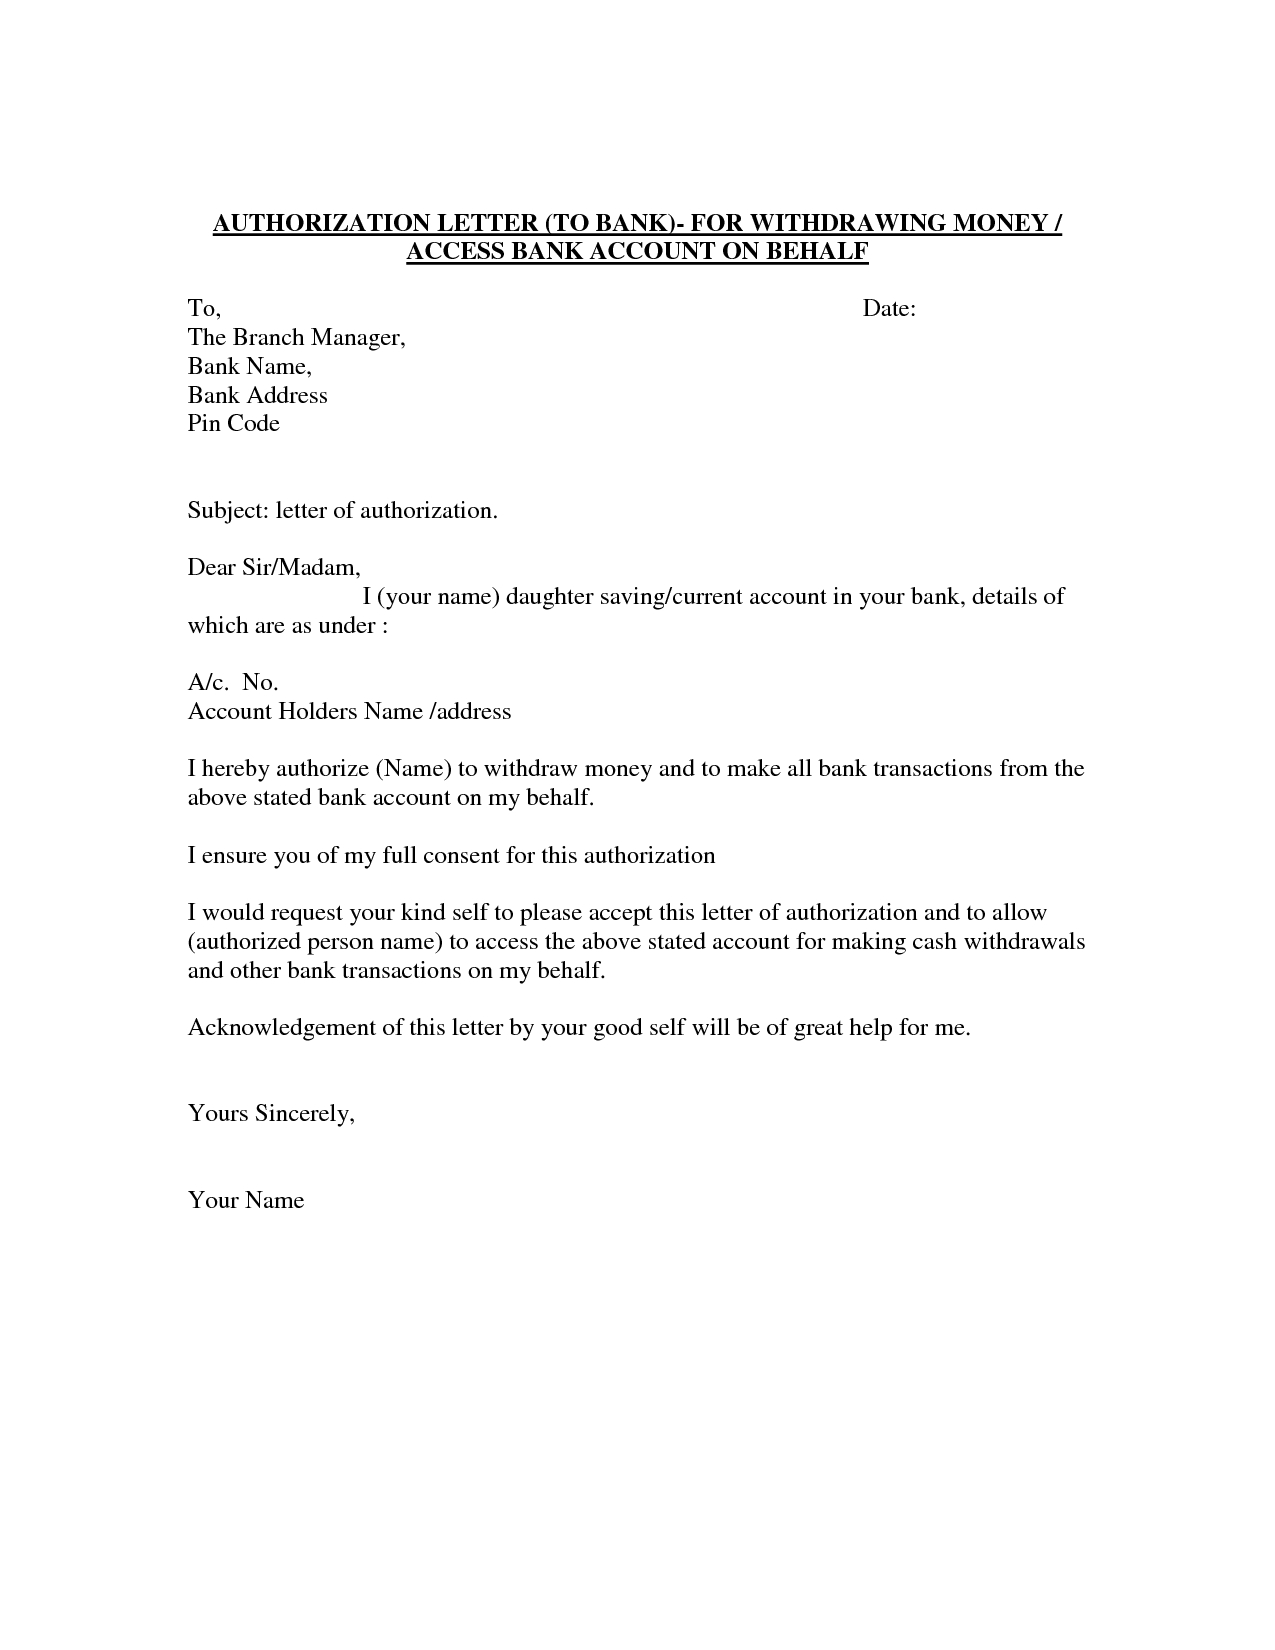 Audit Confirmation Letter Template - Authorization Letter Template Best Car Galleryformal Letter